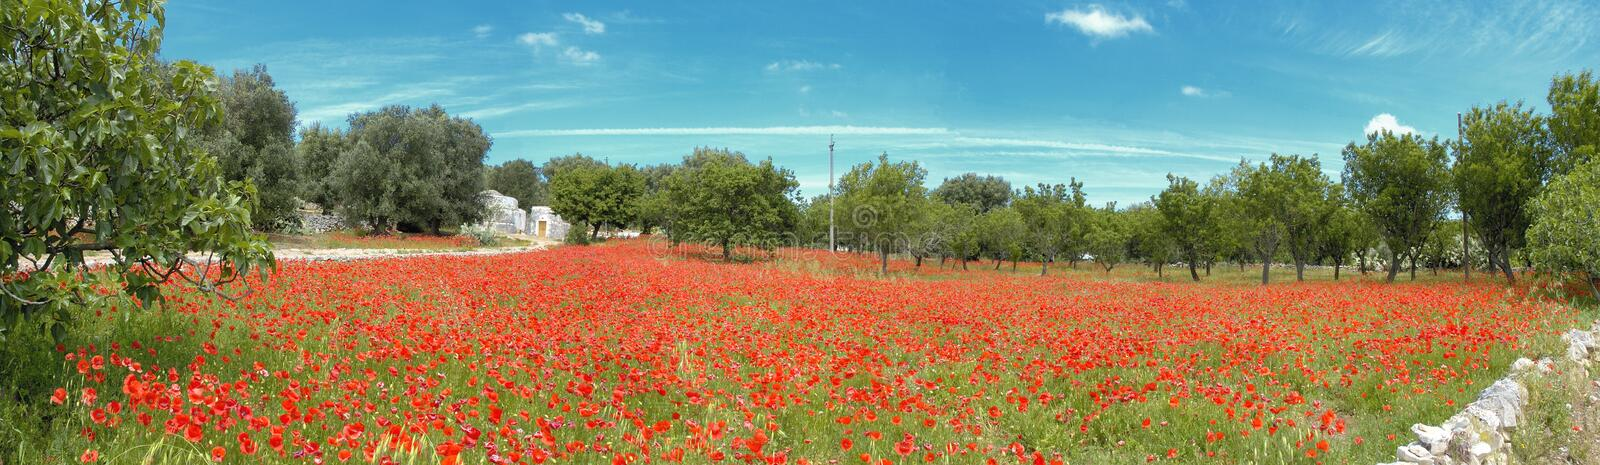 Red poppy field with trulli stock photo